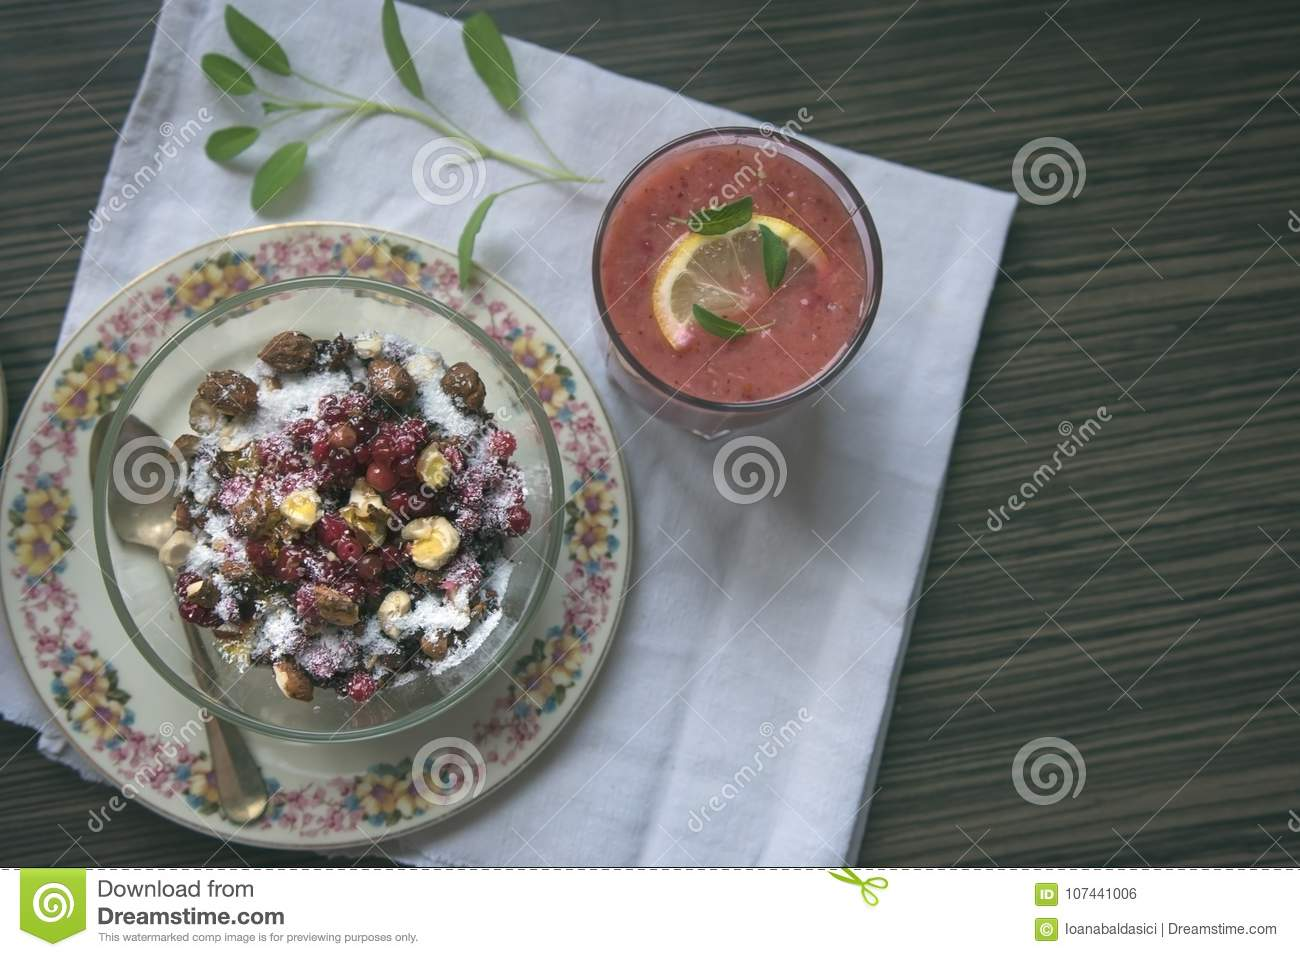 Healthy snack, pudding with berries and nuts along with a glass